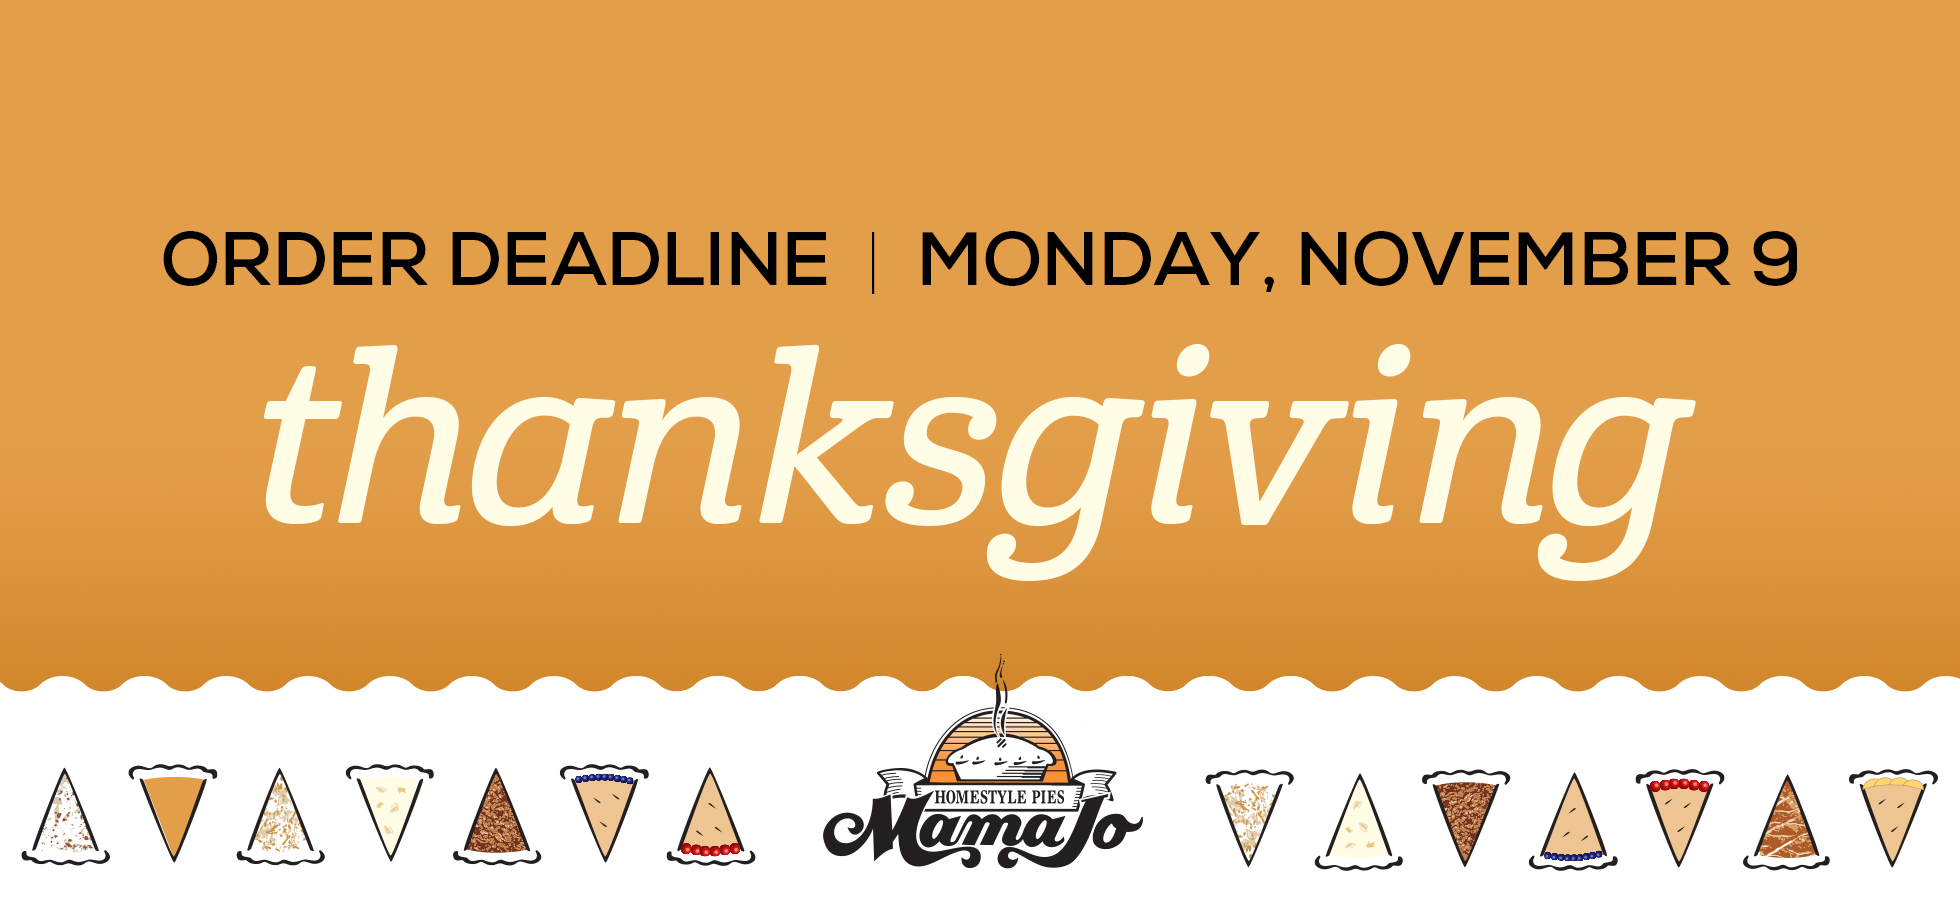 Thanksgiving ORDER DEADLINE: MONDAY, NOVEMBER 9